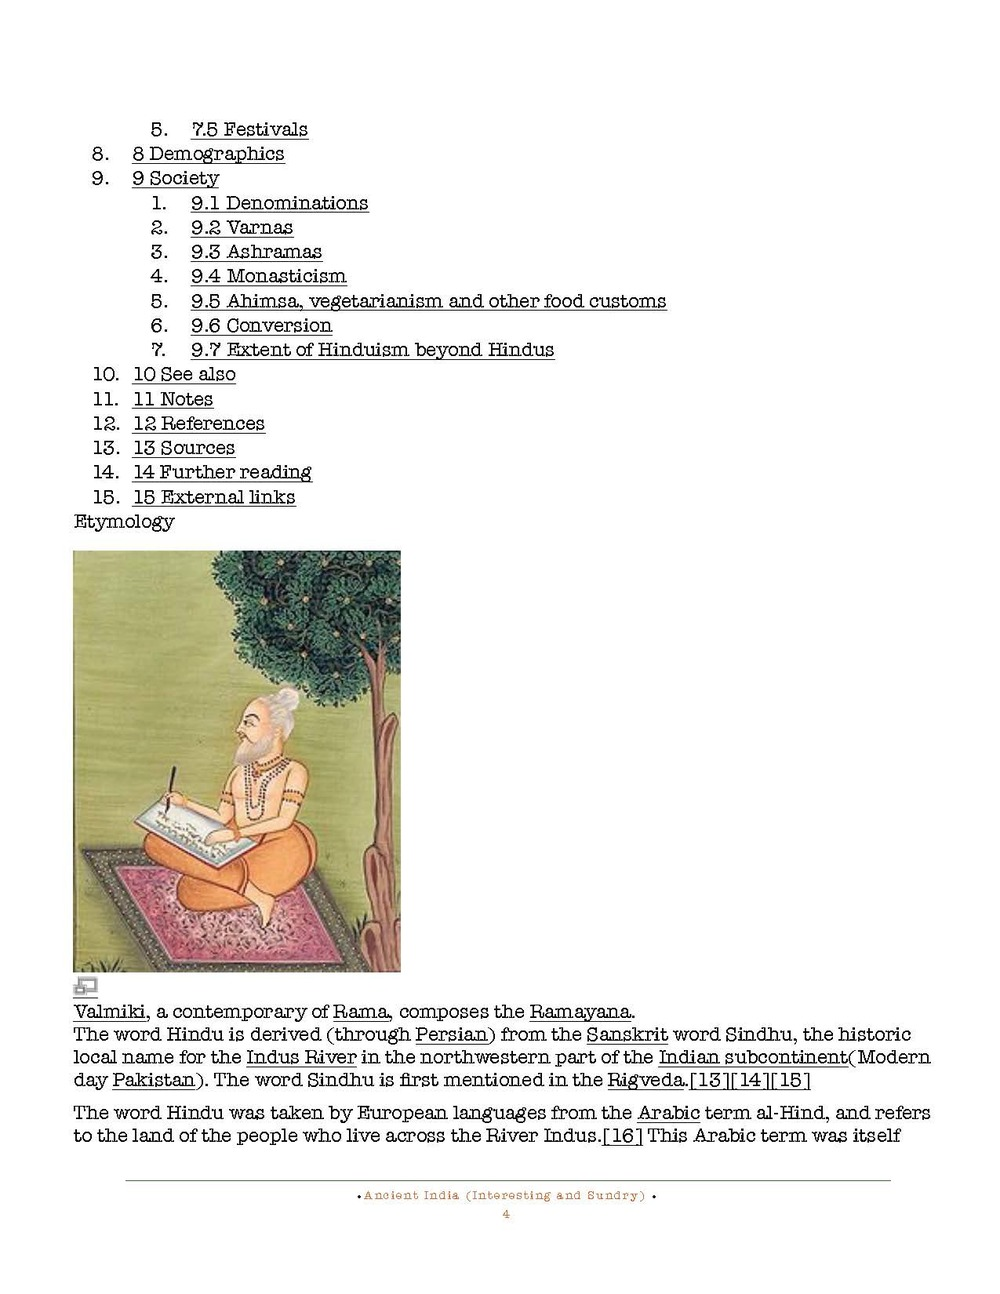 HOCE- Ancient India Notes (Other Interesting and Sundry)_Page_004.jpg